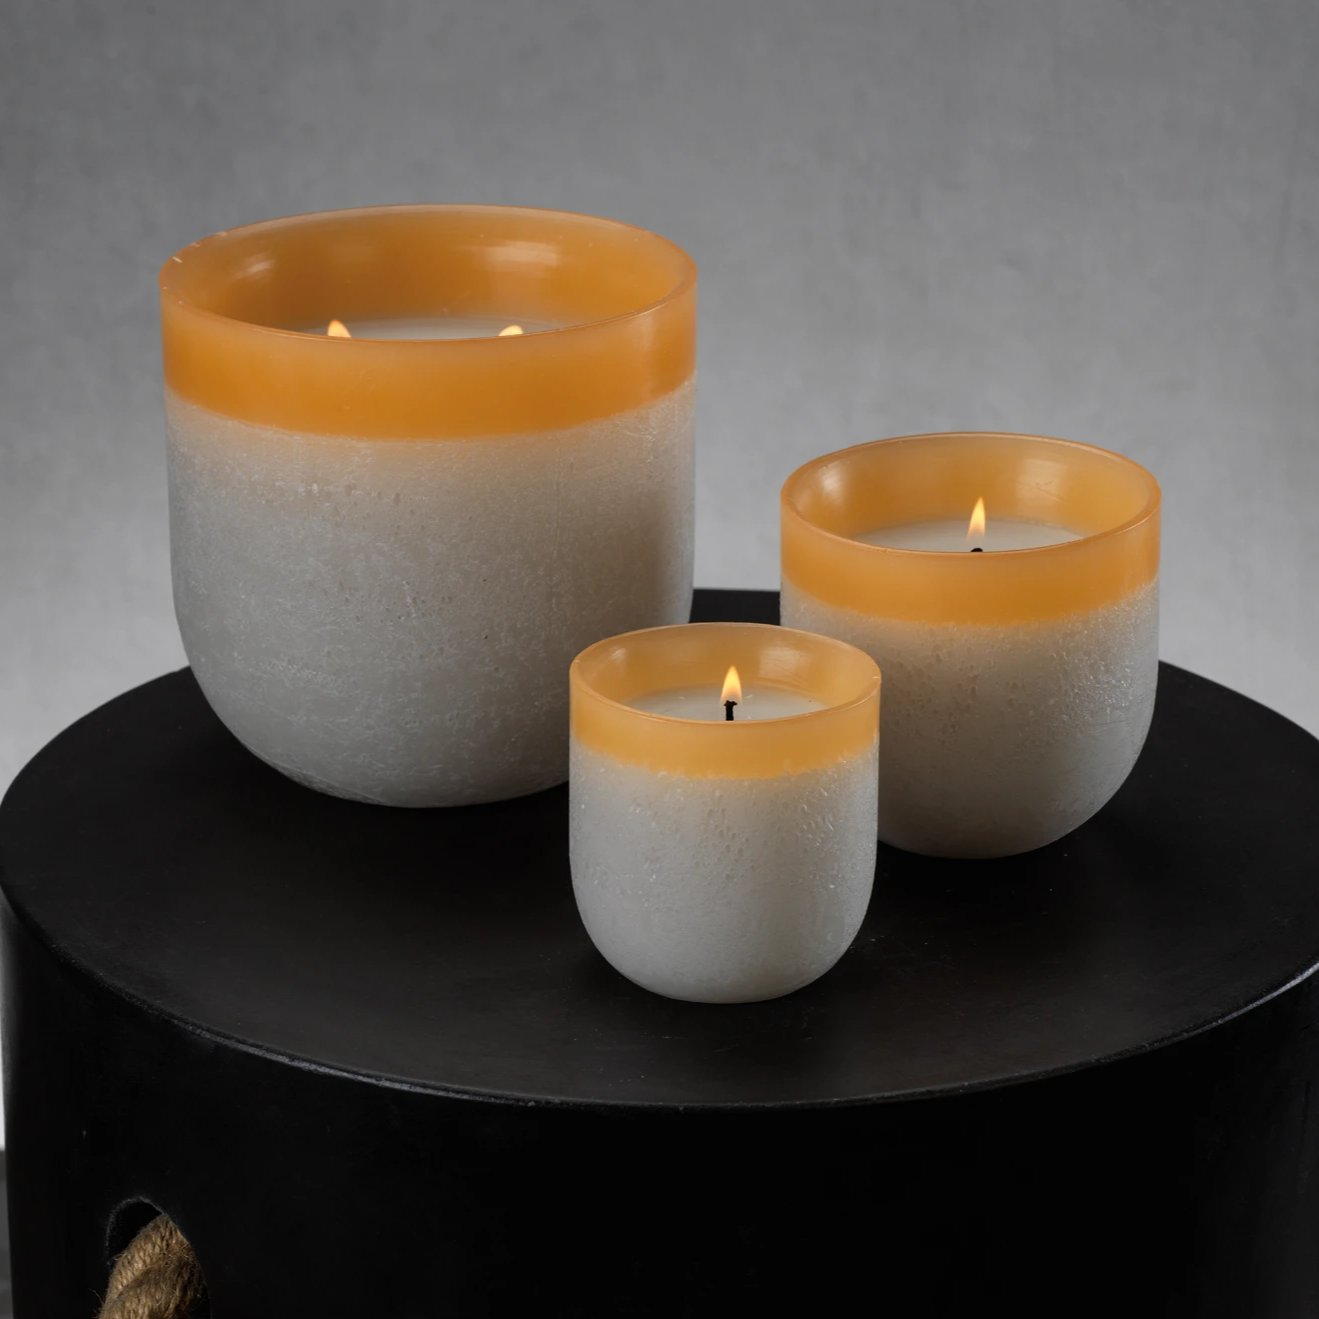 Shoreline Scented Candle - Coconut Mango / Orange - CARLYLE AVENUE